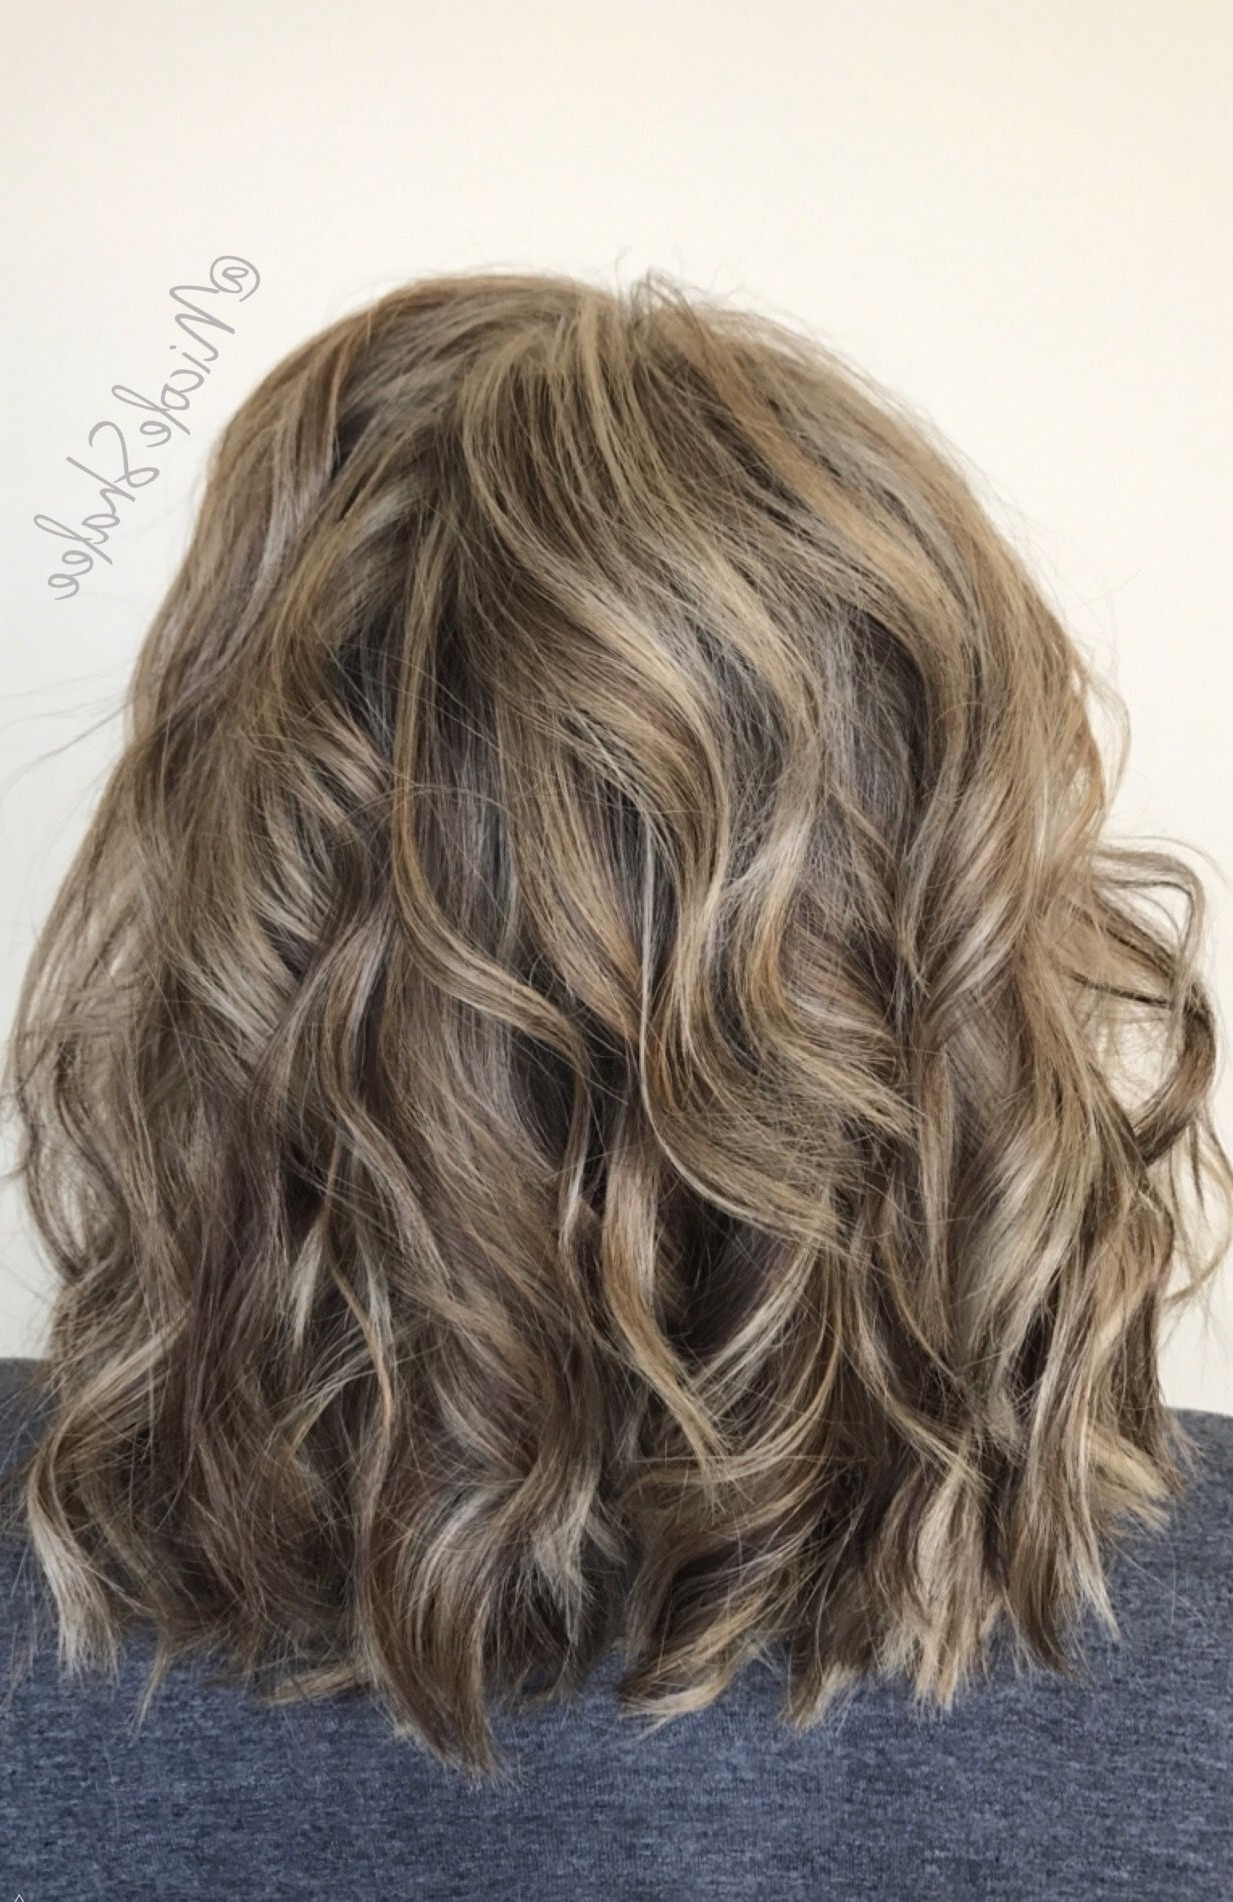 Famous Bronde Beach Waves Blonde Hairstyles Throughout Lob, Long Bob, Beach Waves, Bronde Hair, Sandy Brown Hair, Sandy (View 4 of 20)